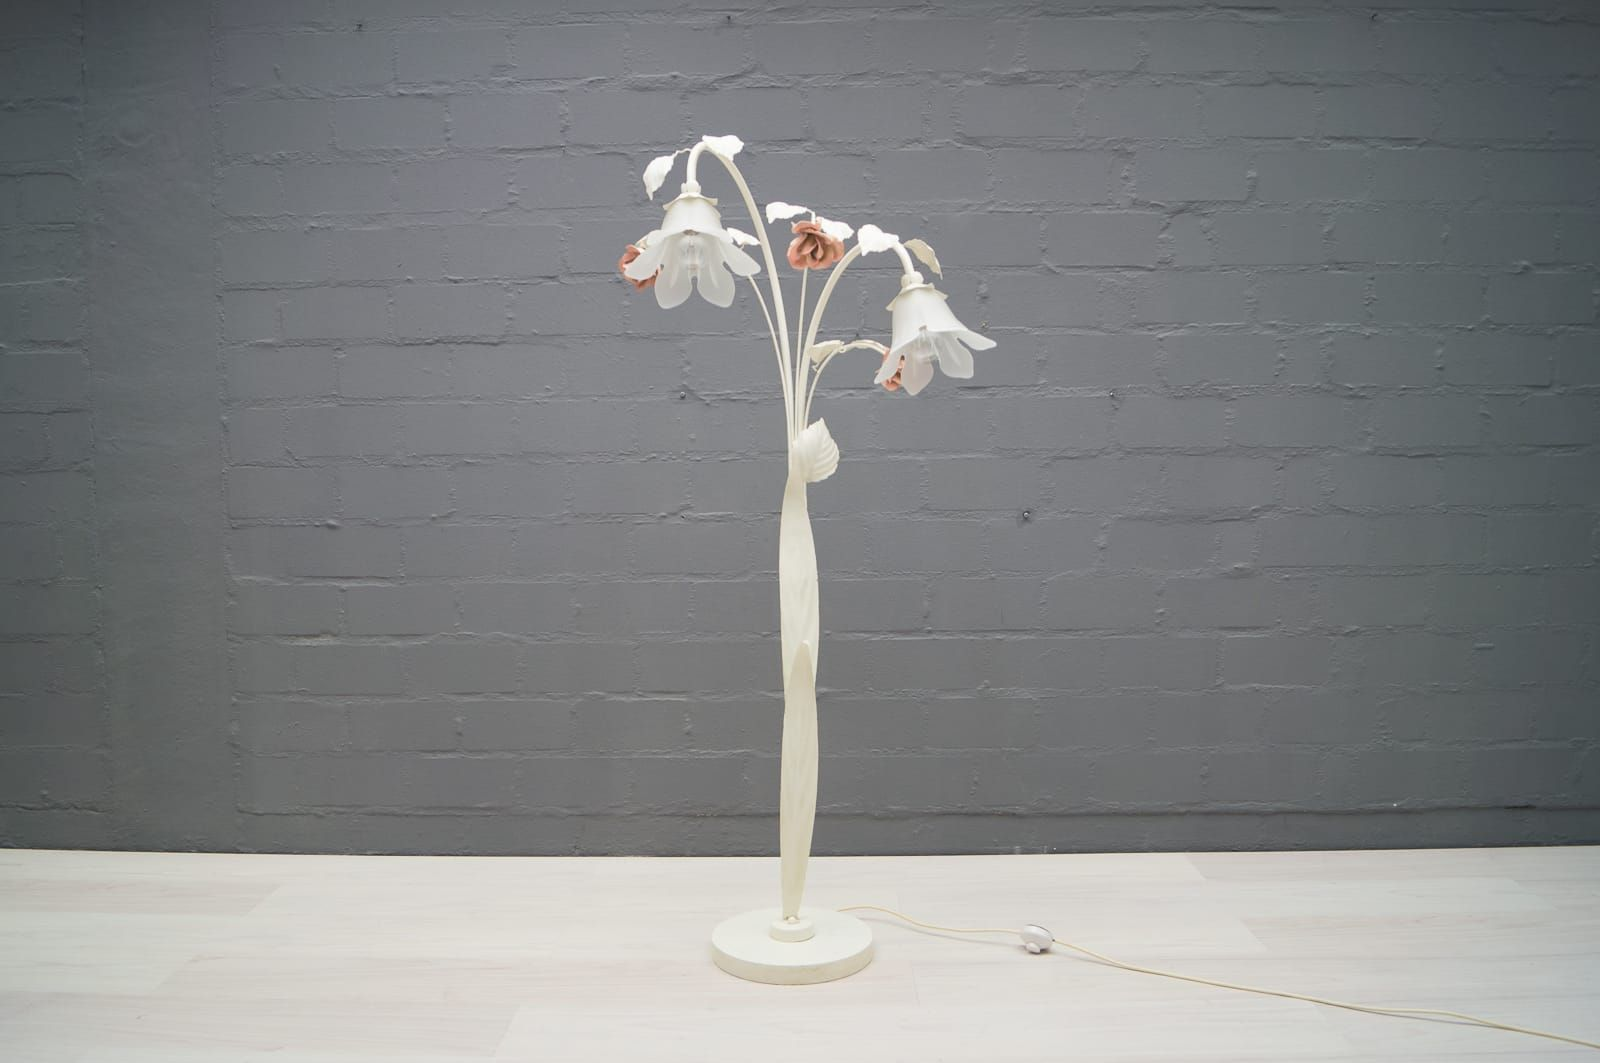 Italian Vintage Floral Floor Lamp in Metal, 1960s for sale at Pamono